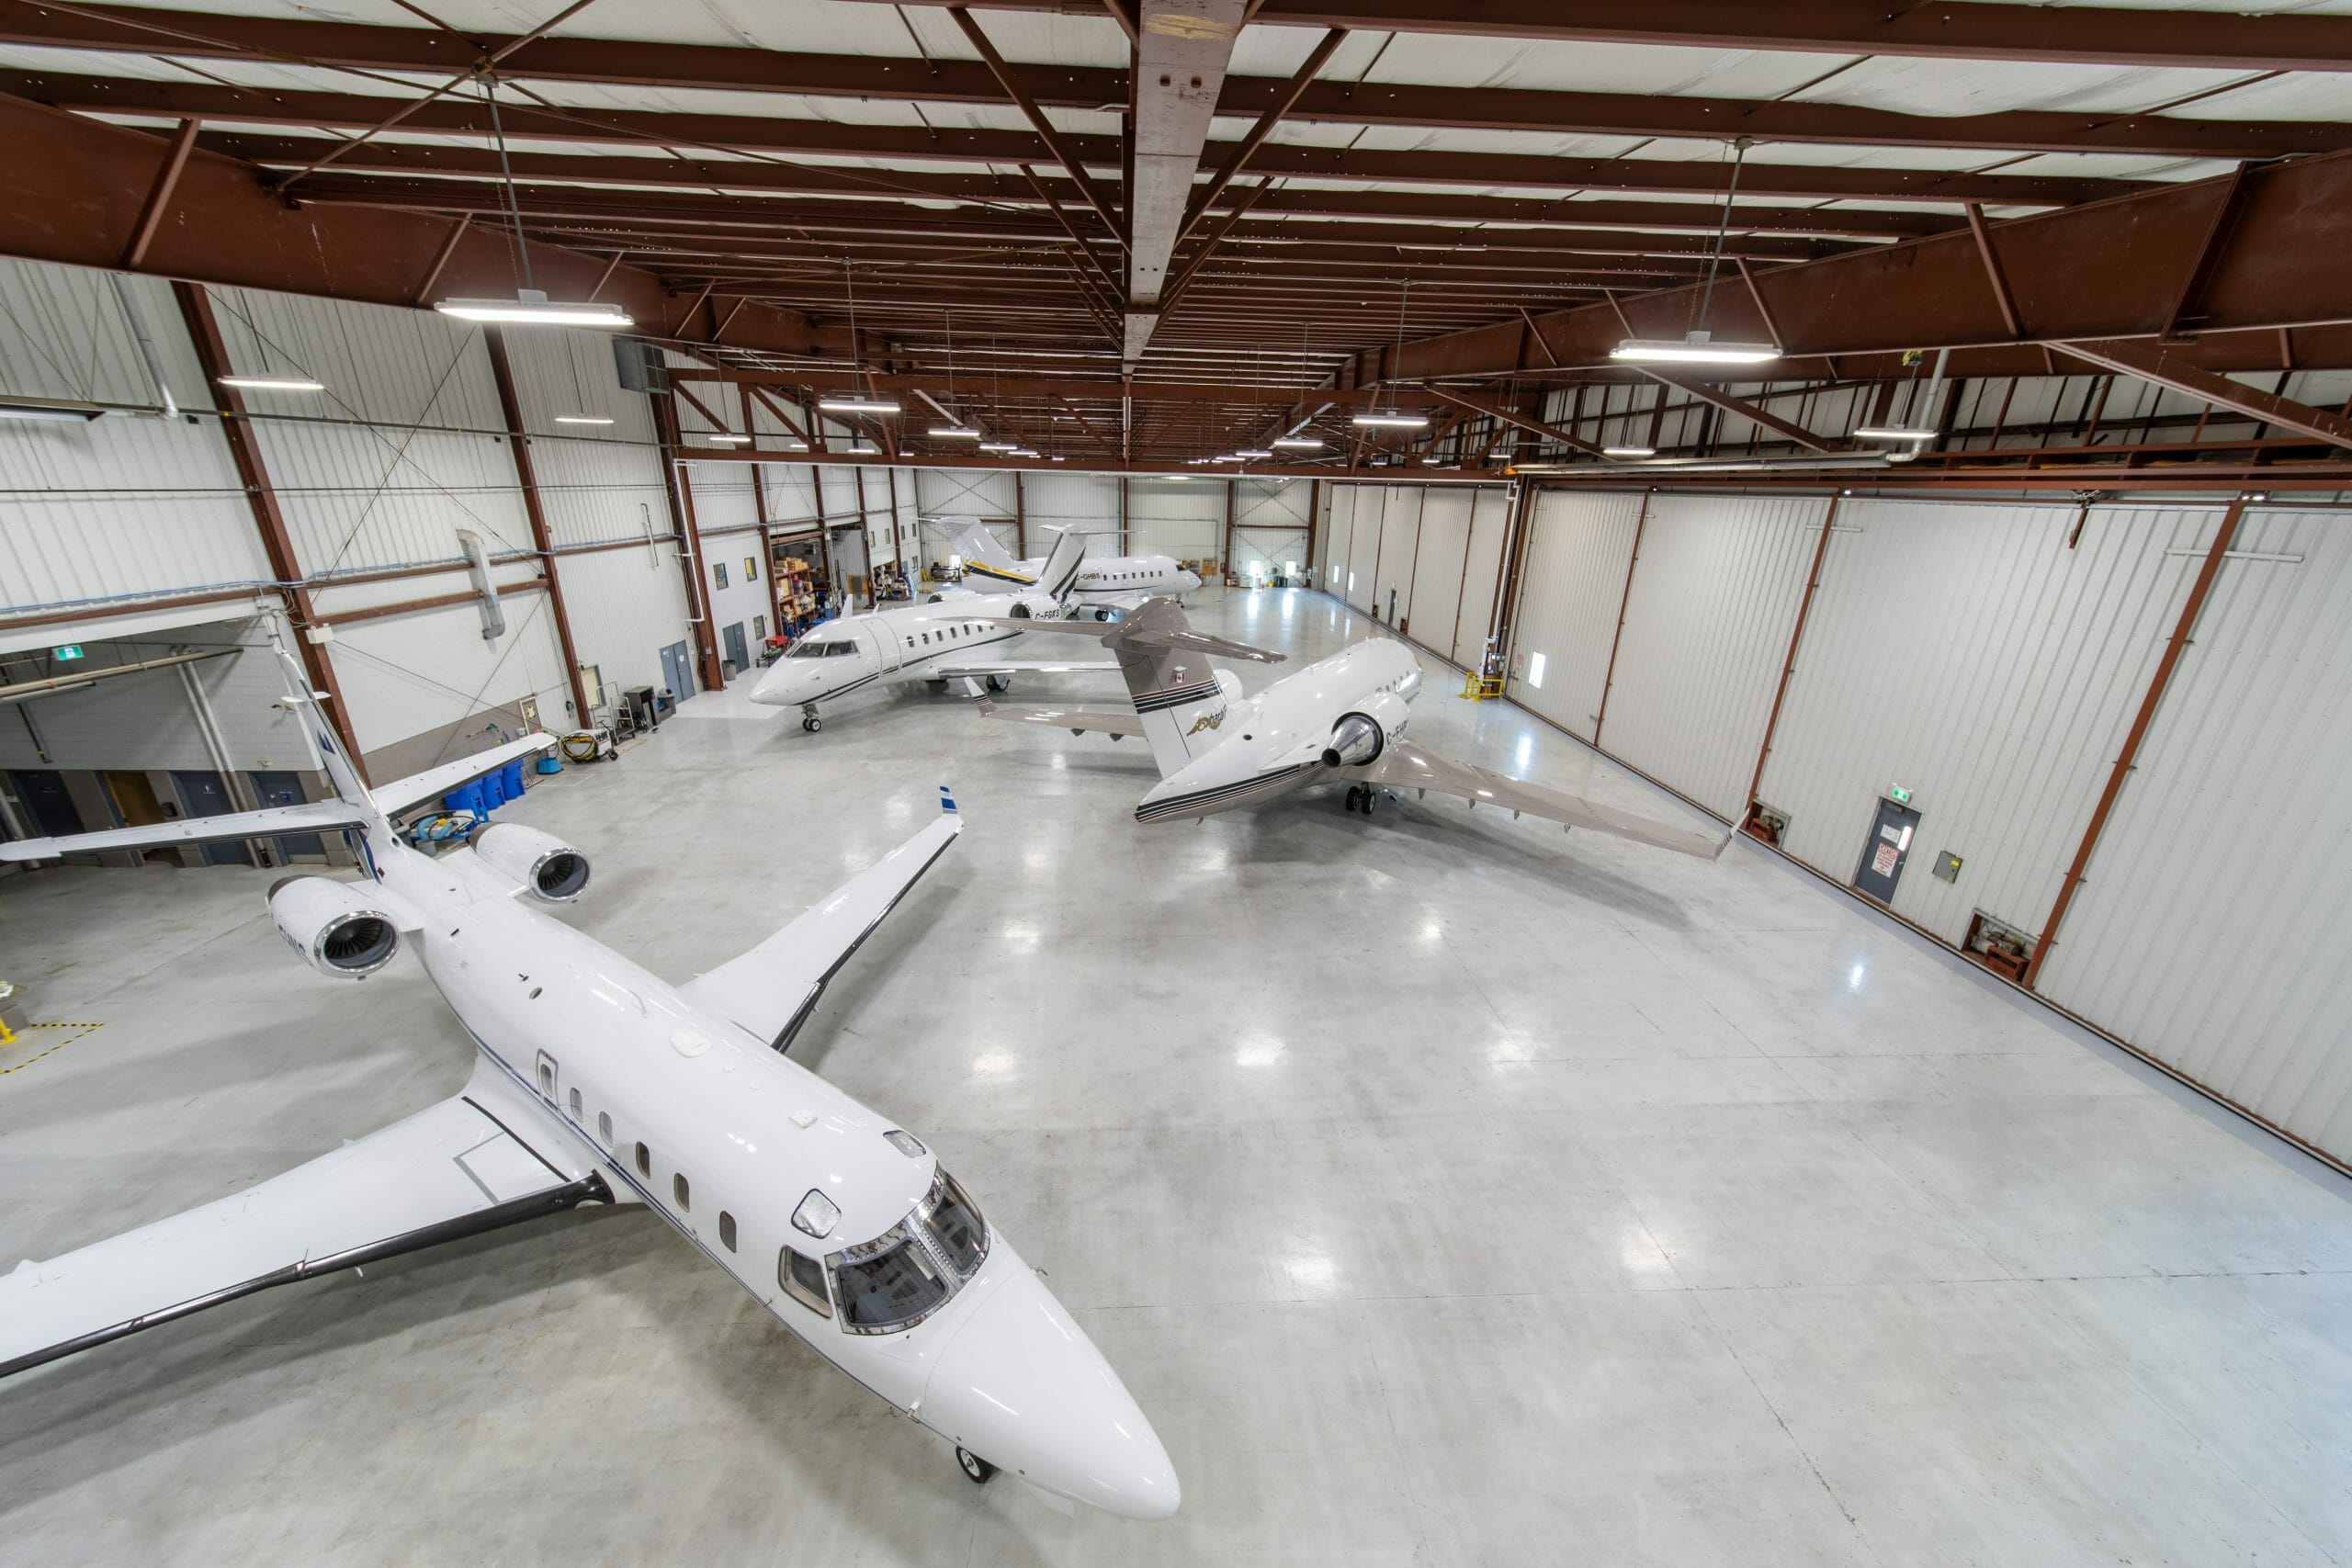 Overhead view of 4 jets in a hanger.